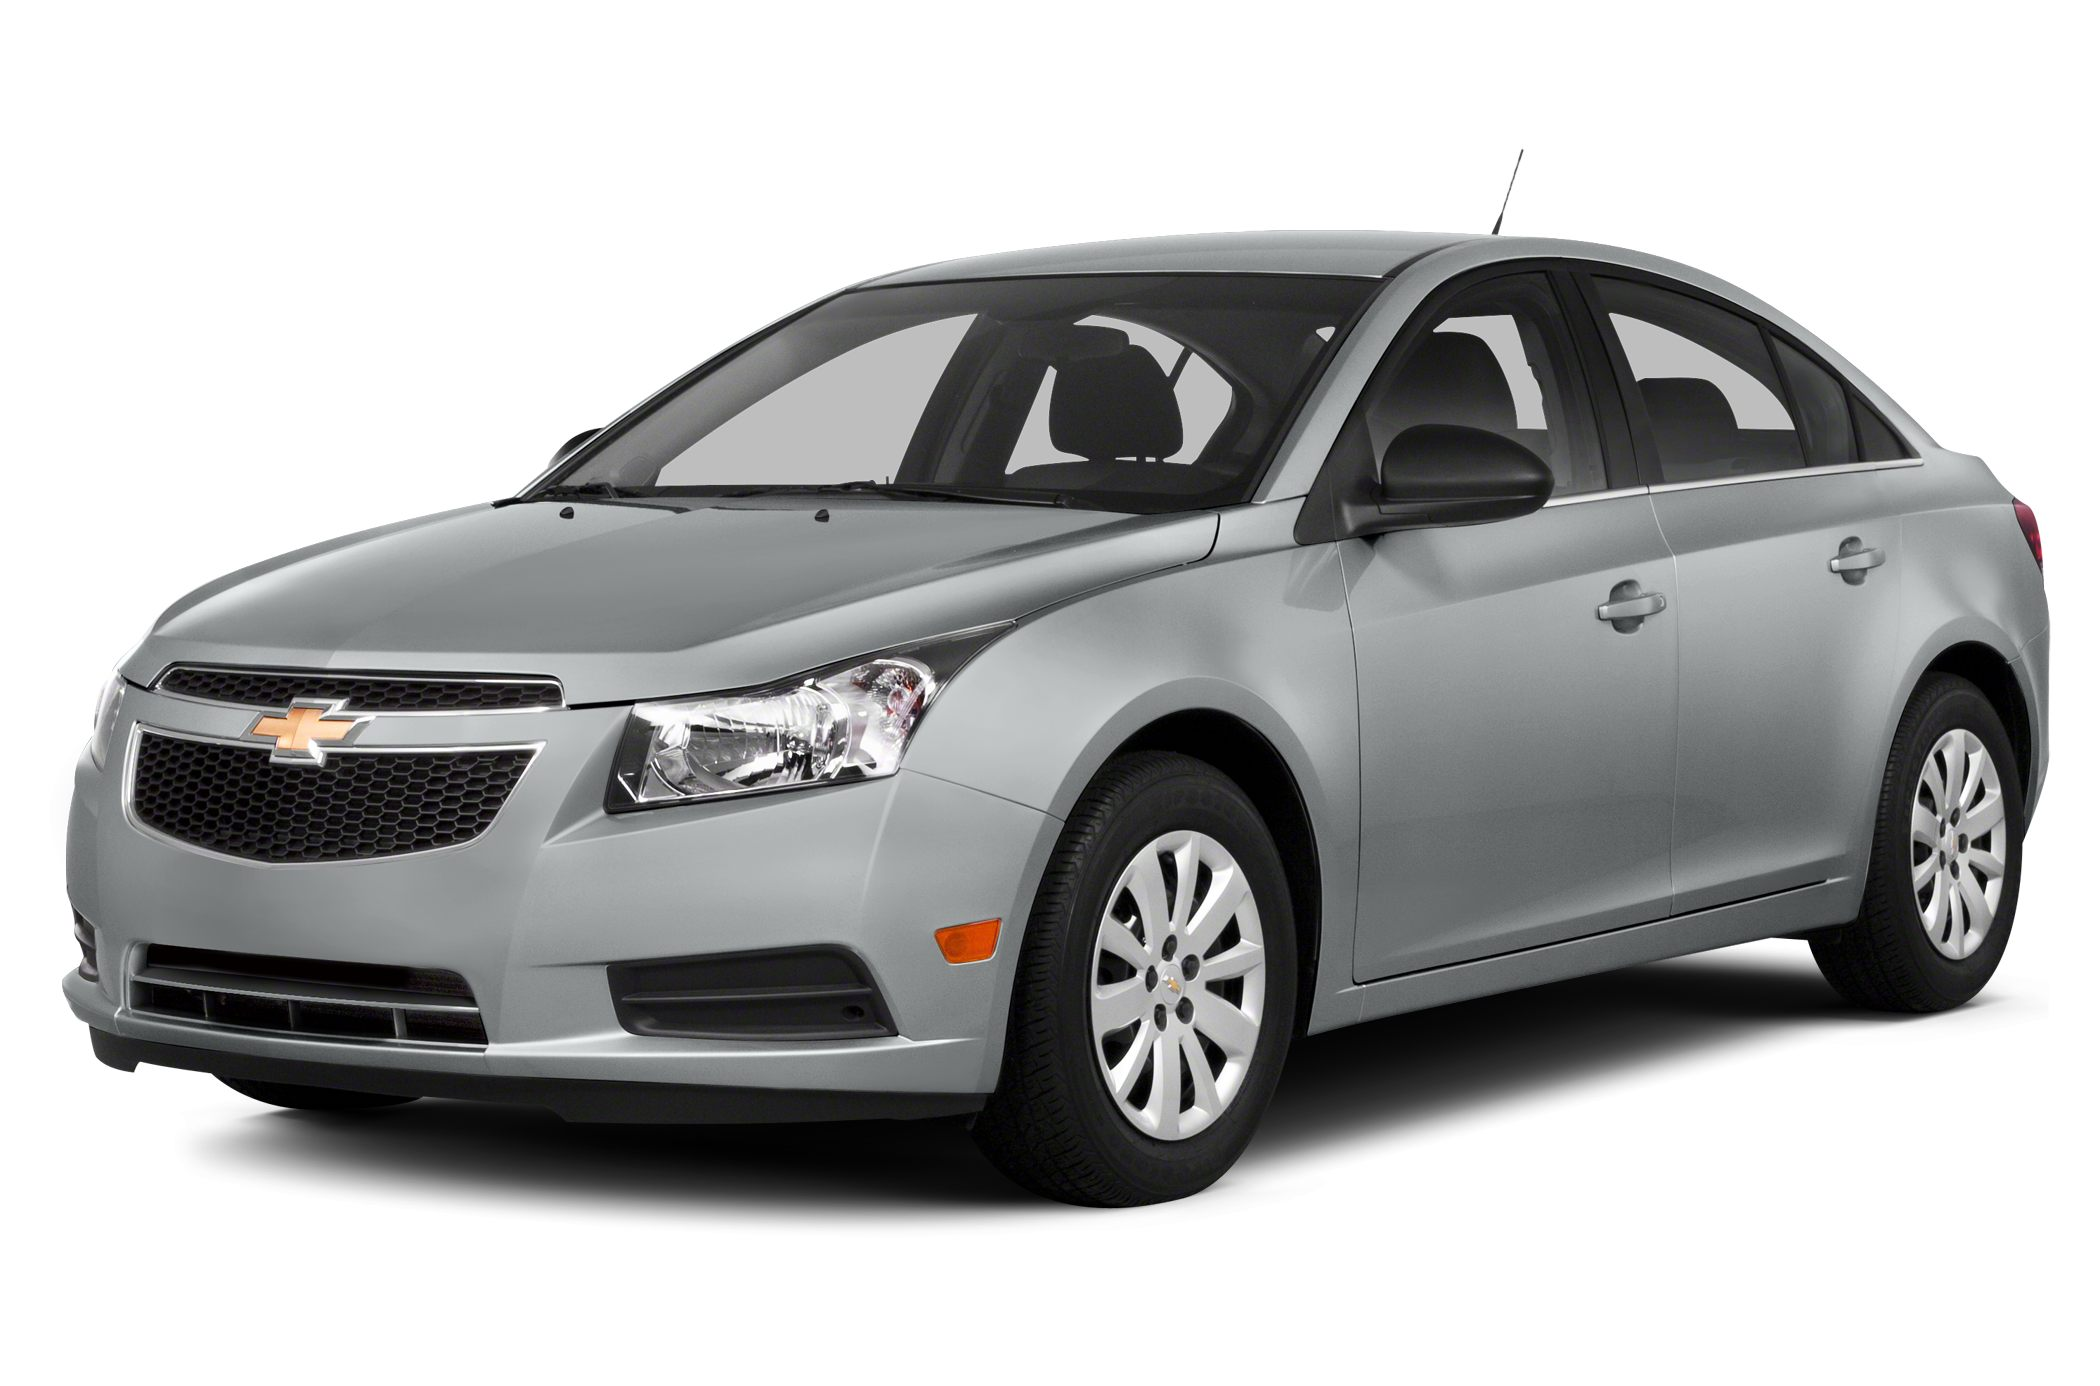 2014 Chevrolet Cruze 1LT Sedan for sale in Wilsonville for $14,901 with 15,533 miles.